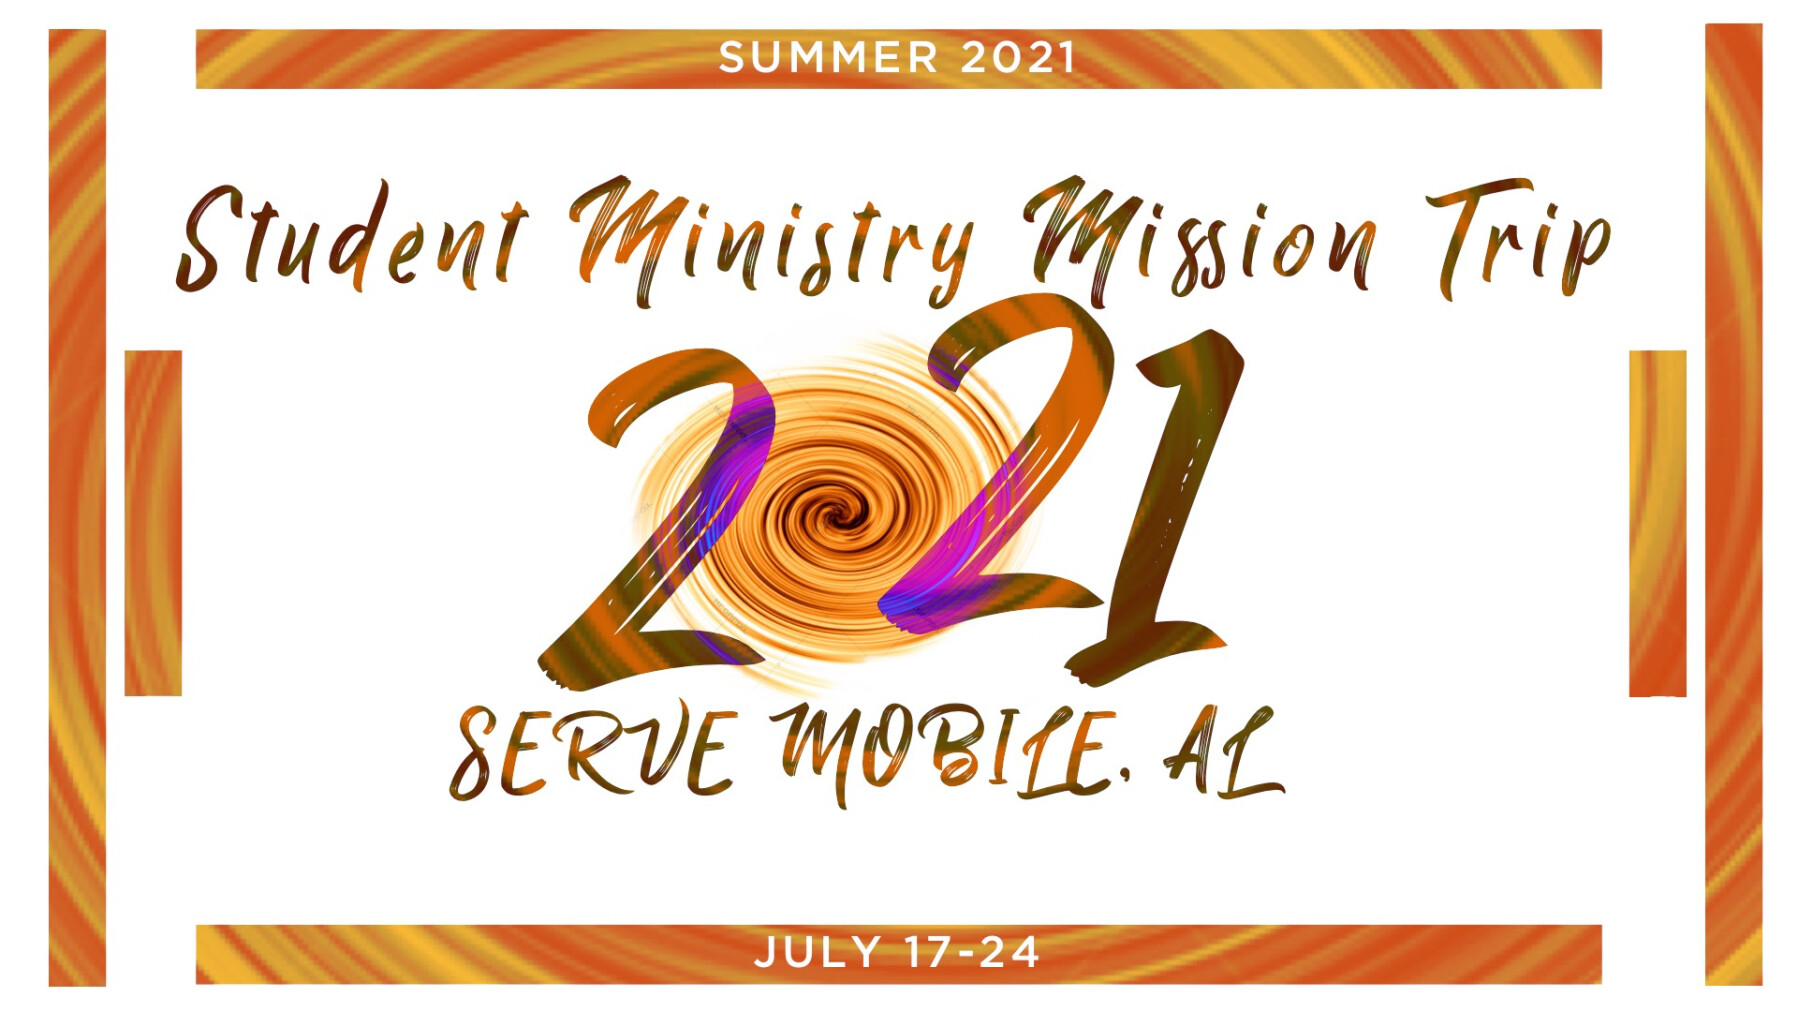 Student Ministry Mission Trip